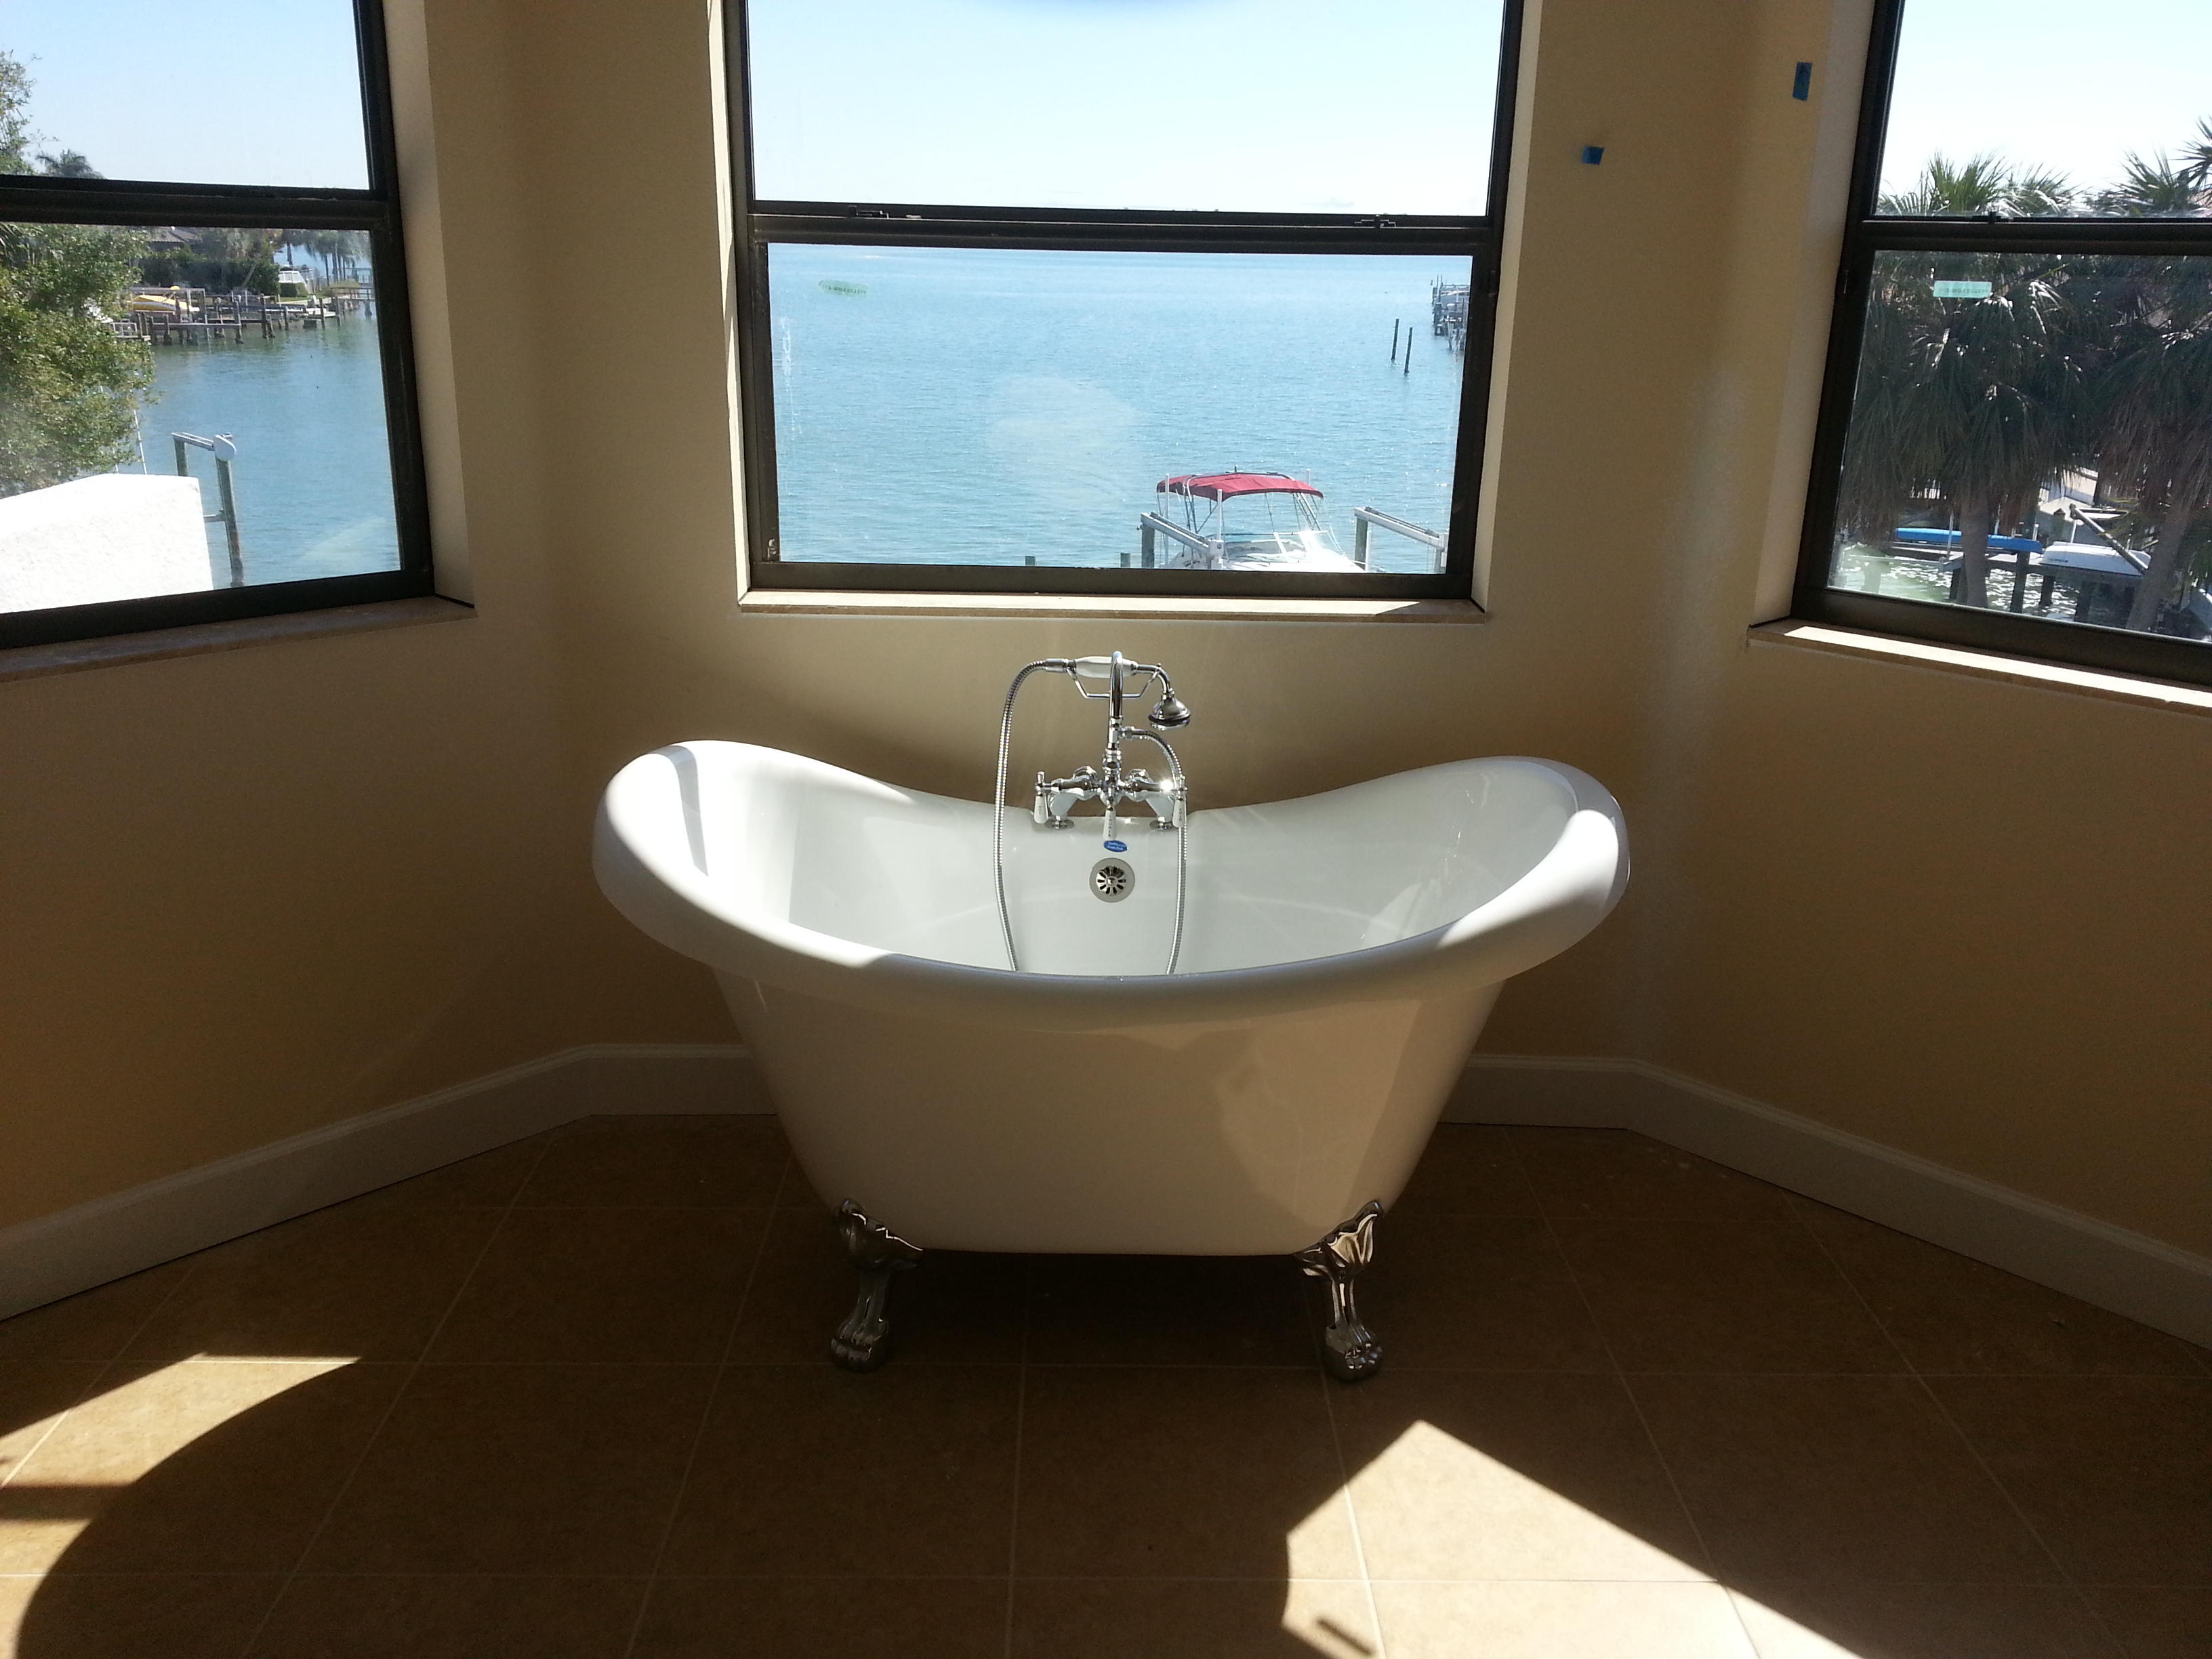 price round suppliers showroom manufacturers competitive com online bathtub alibaba and at wood for